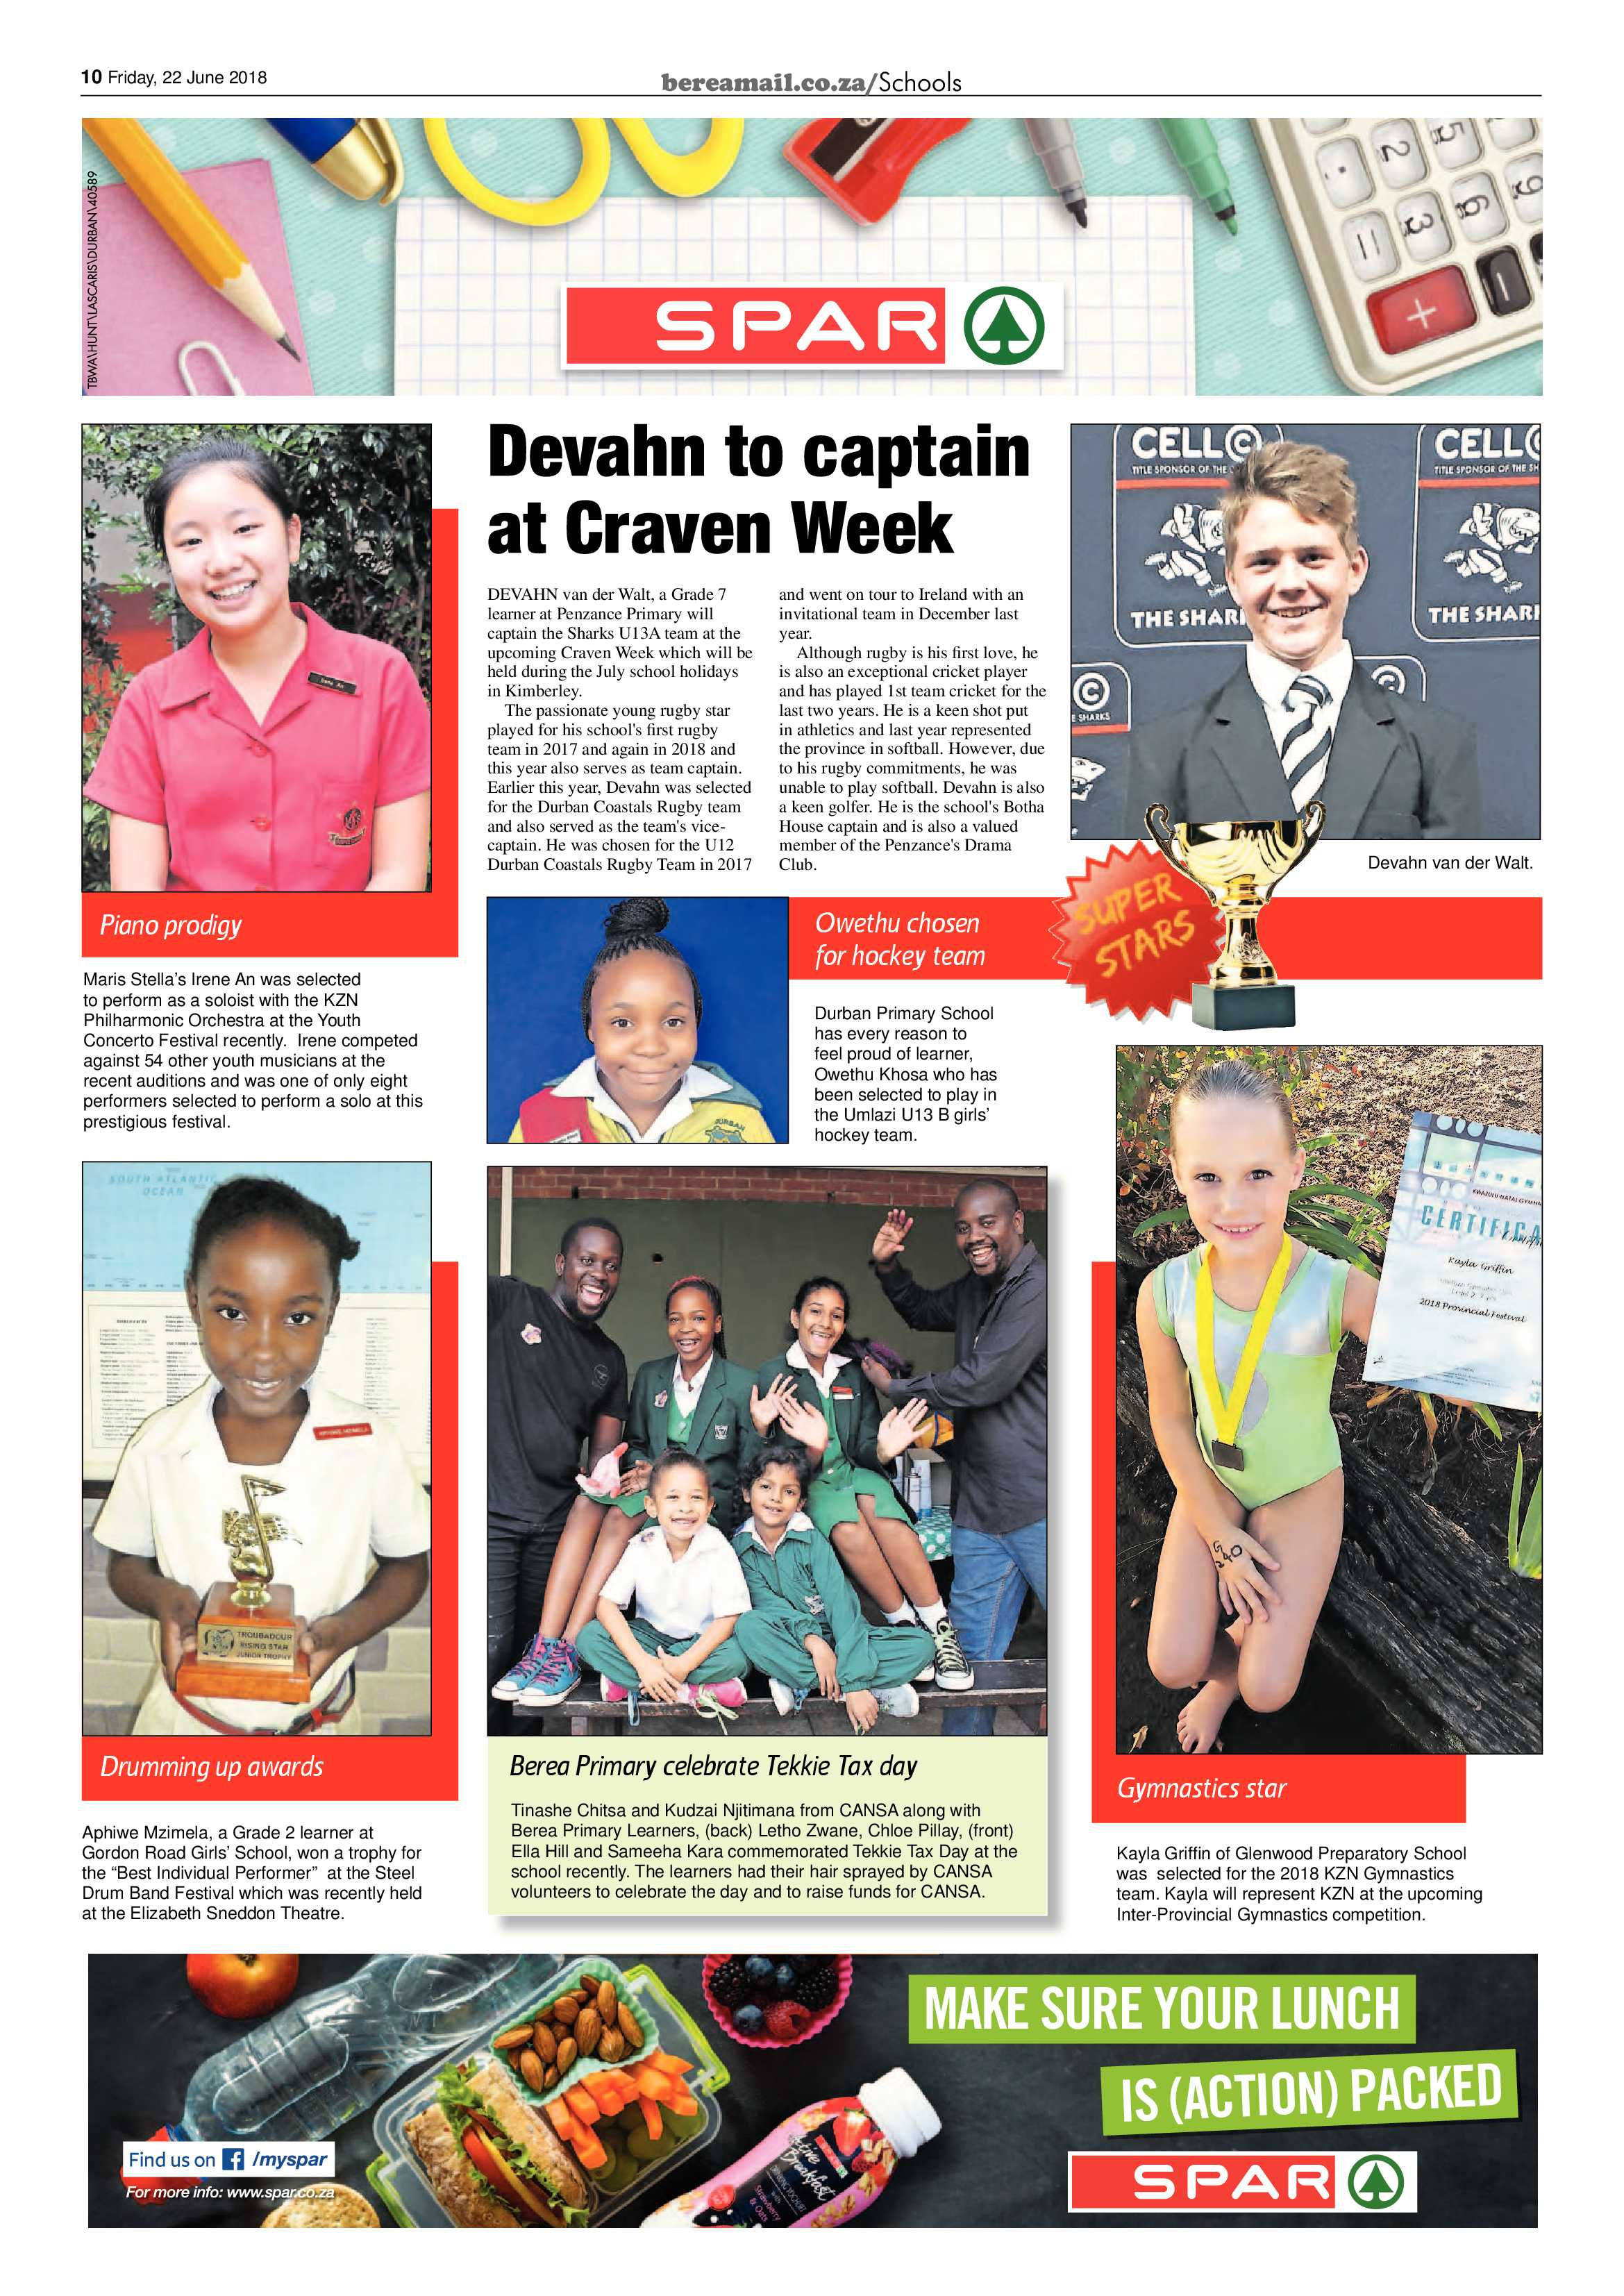 berea-mail-22-june-2018-epapers-page-10